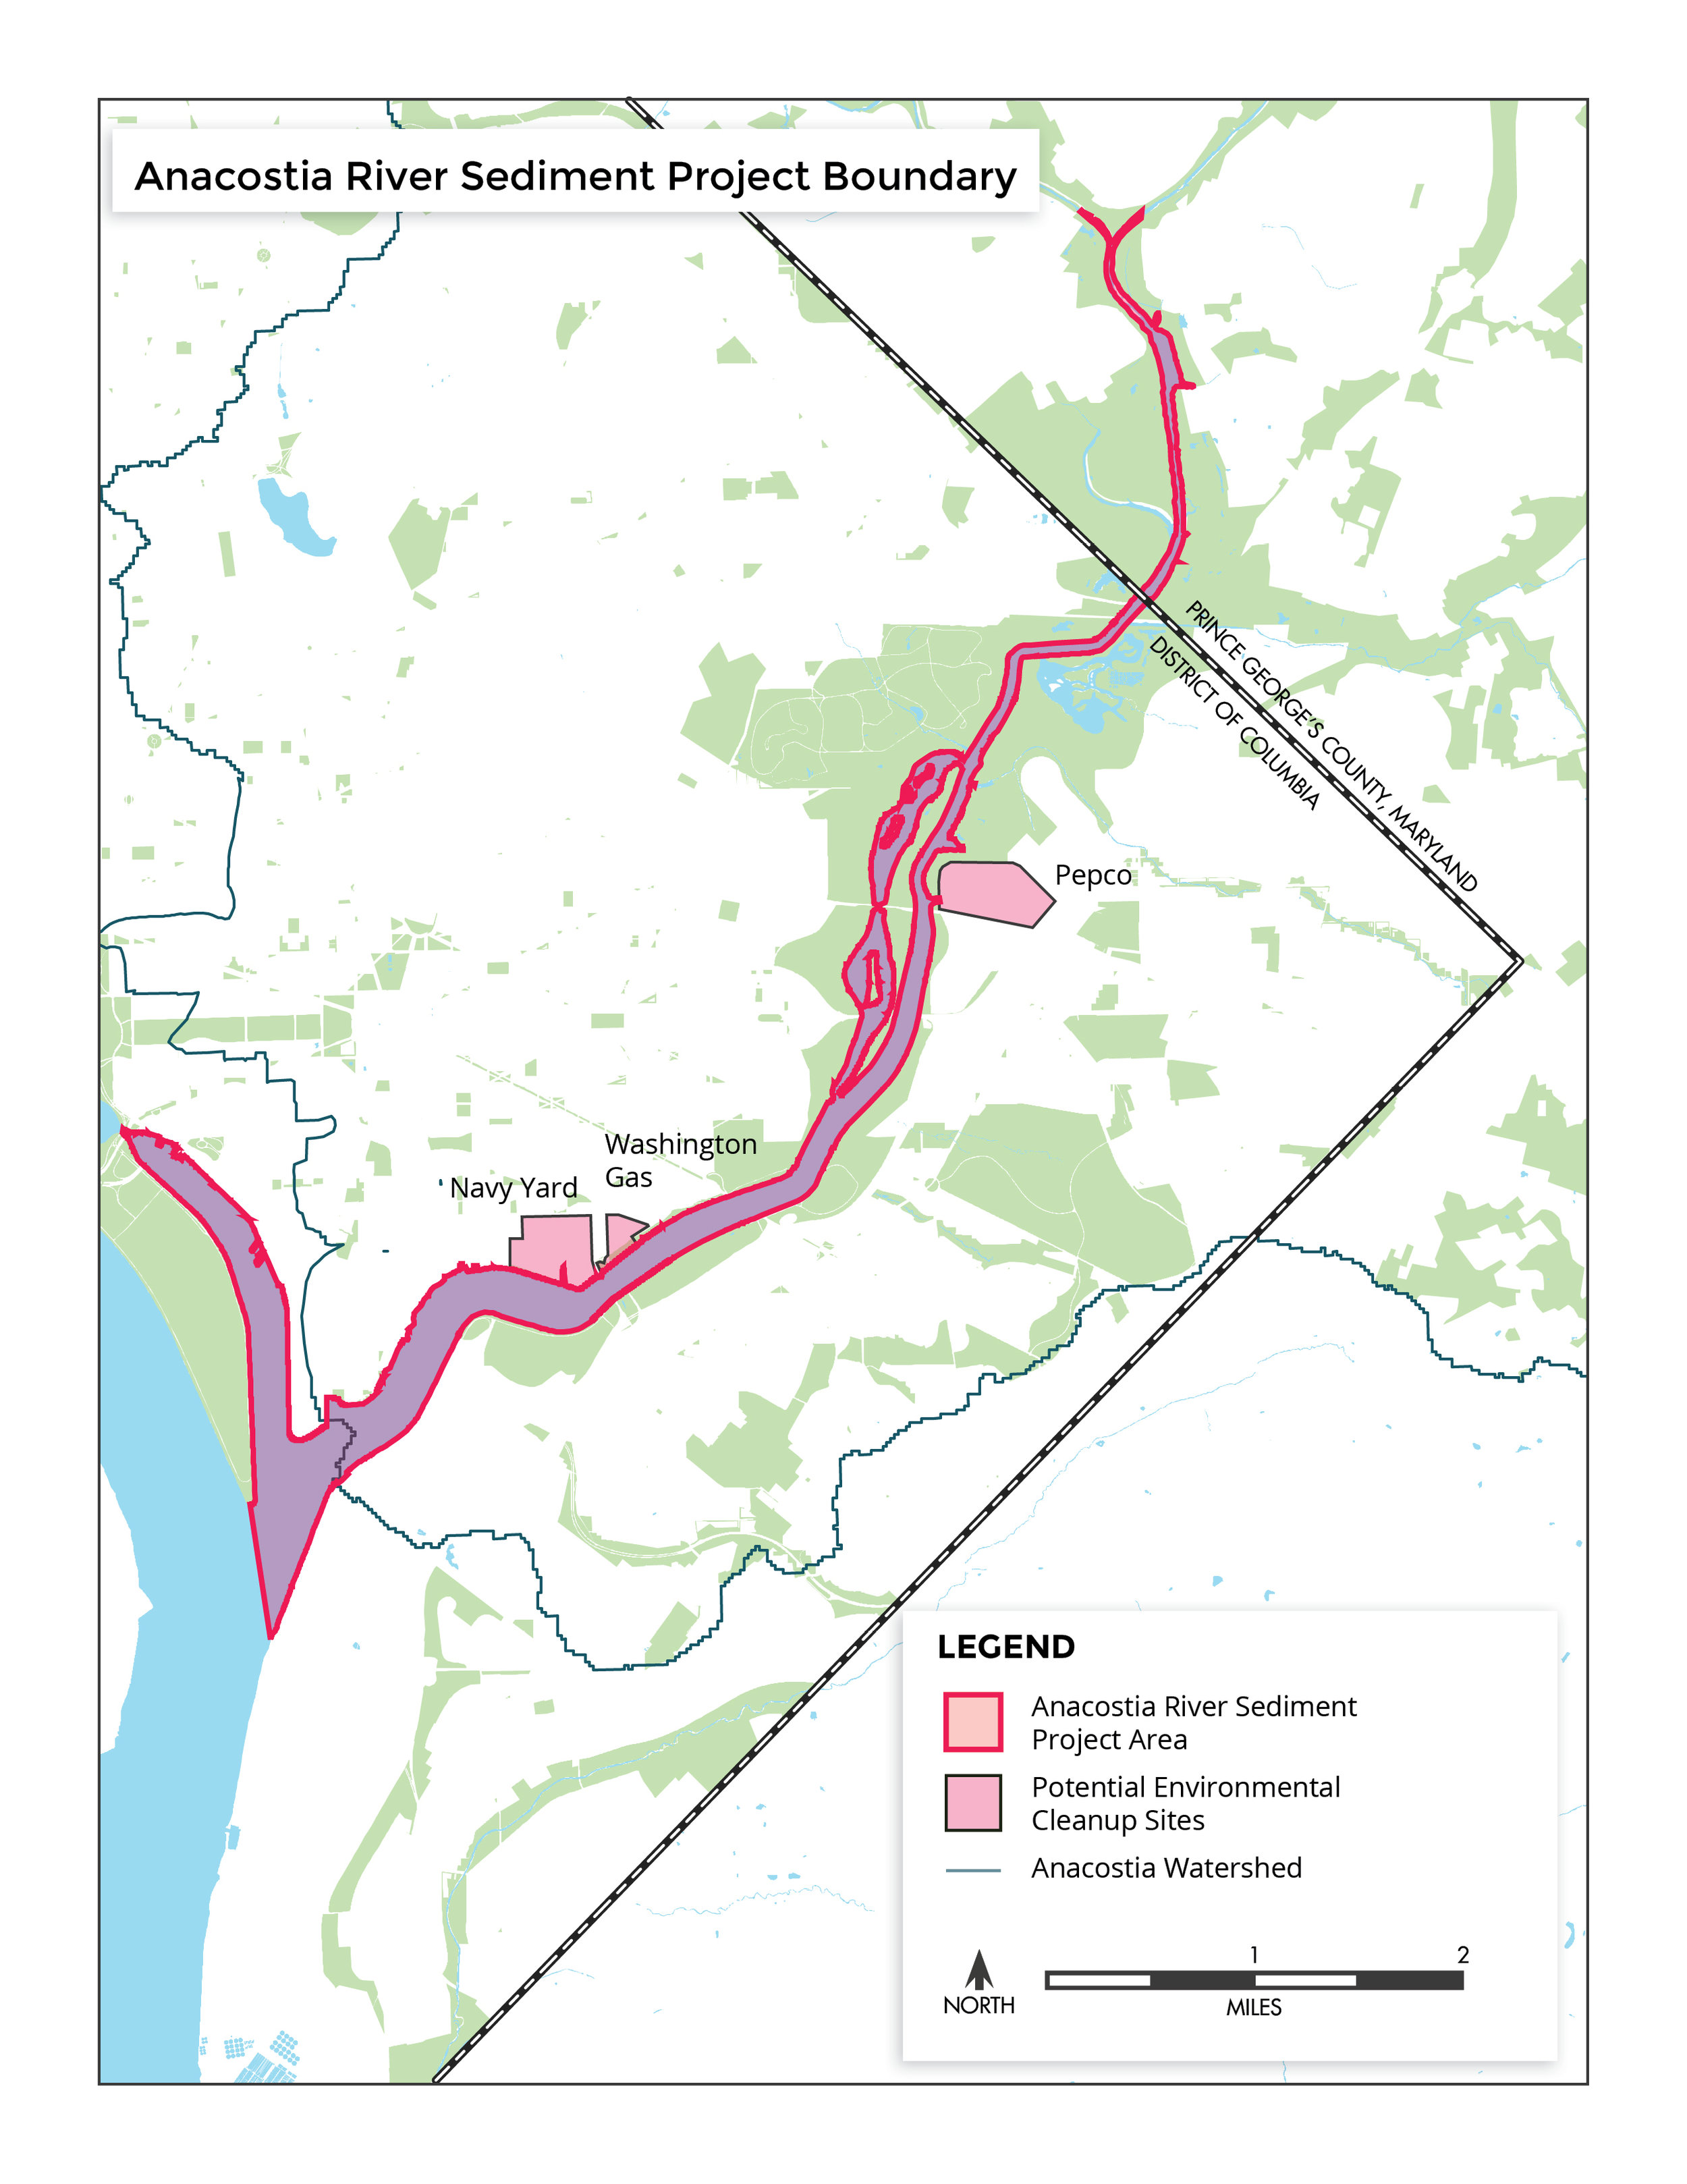 Project area boundary for the Anacostia River Sediment Project.